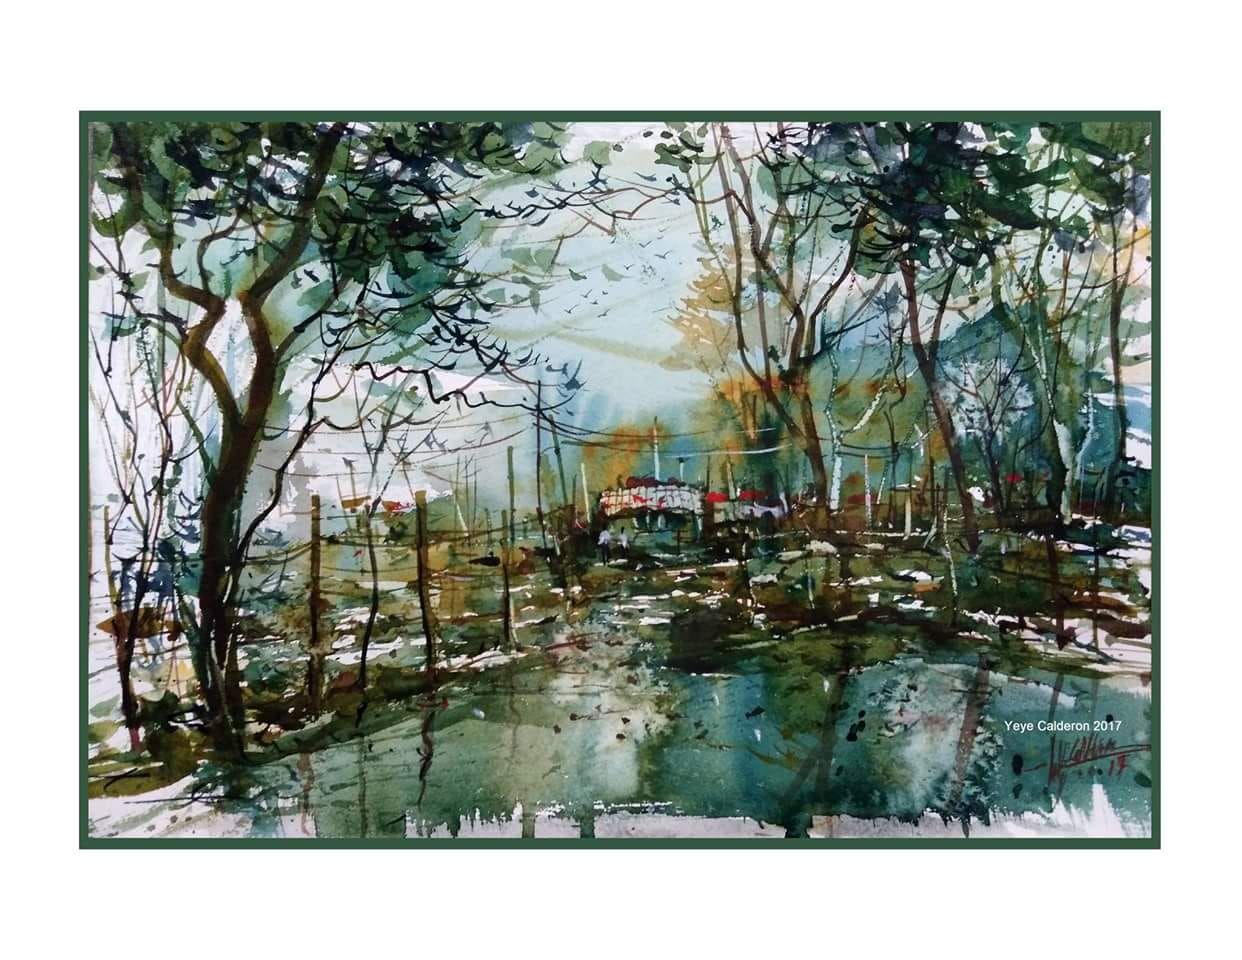 Wilfredo Calderon Philippines Watercolor Painting Techniques